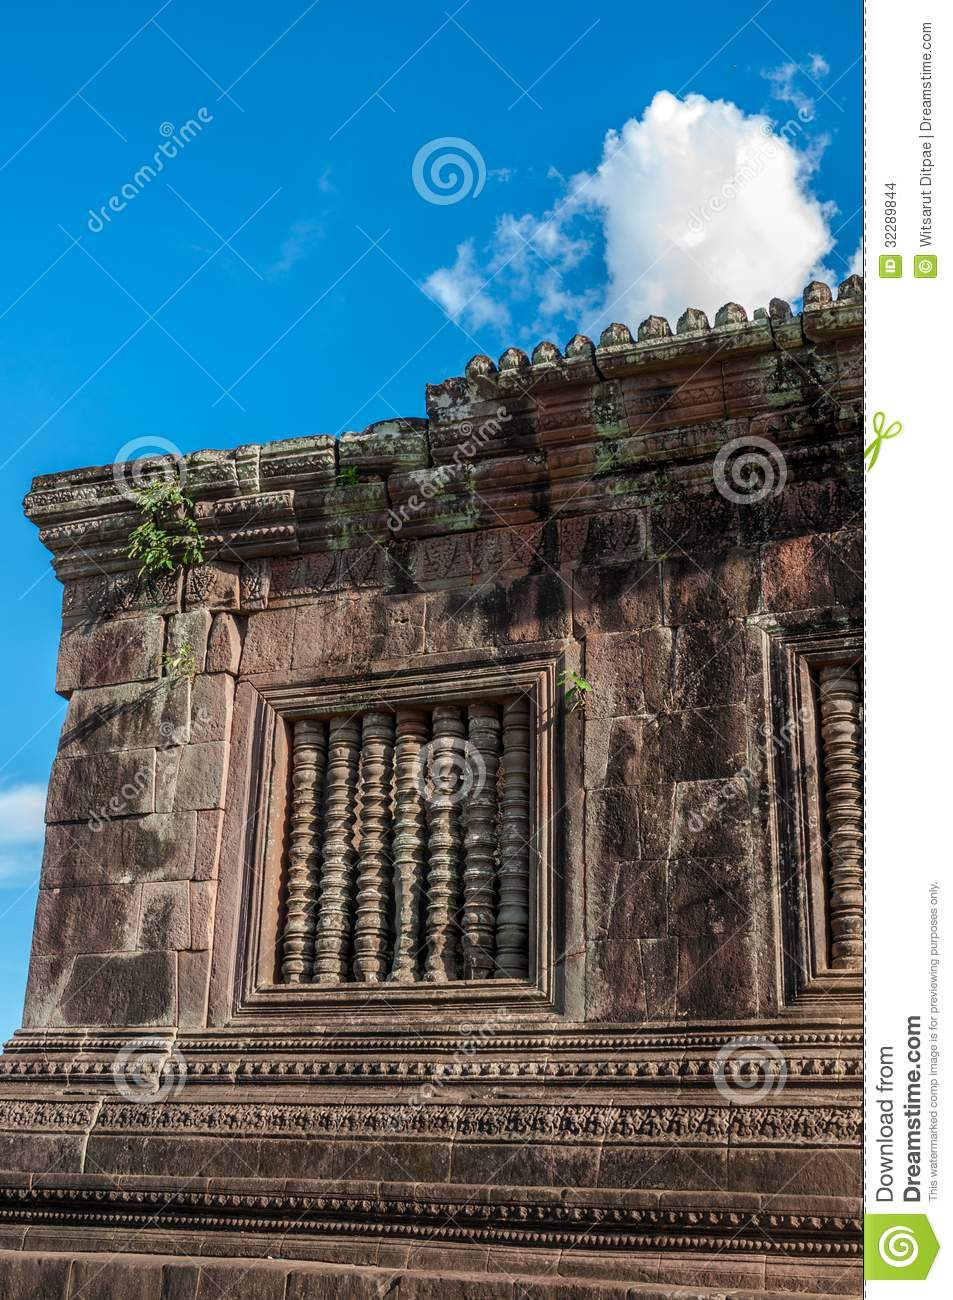 Ancient khmer architecture at wat phou stock images for Architecture khmer